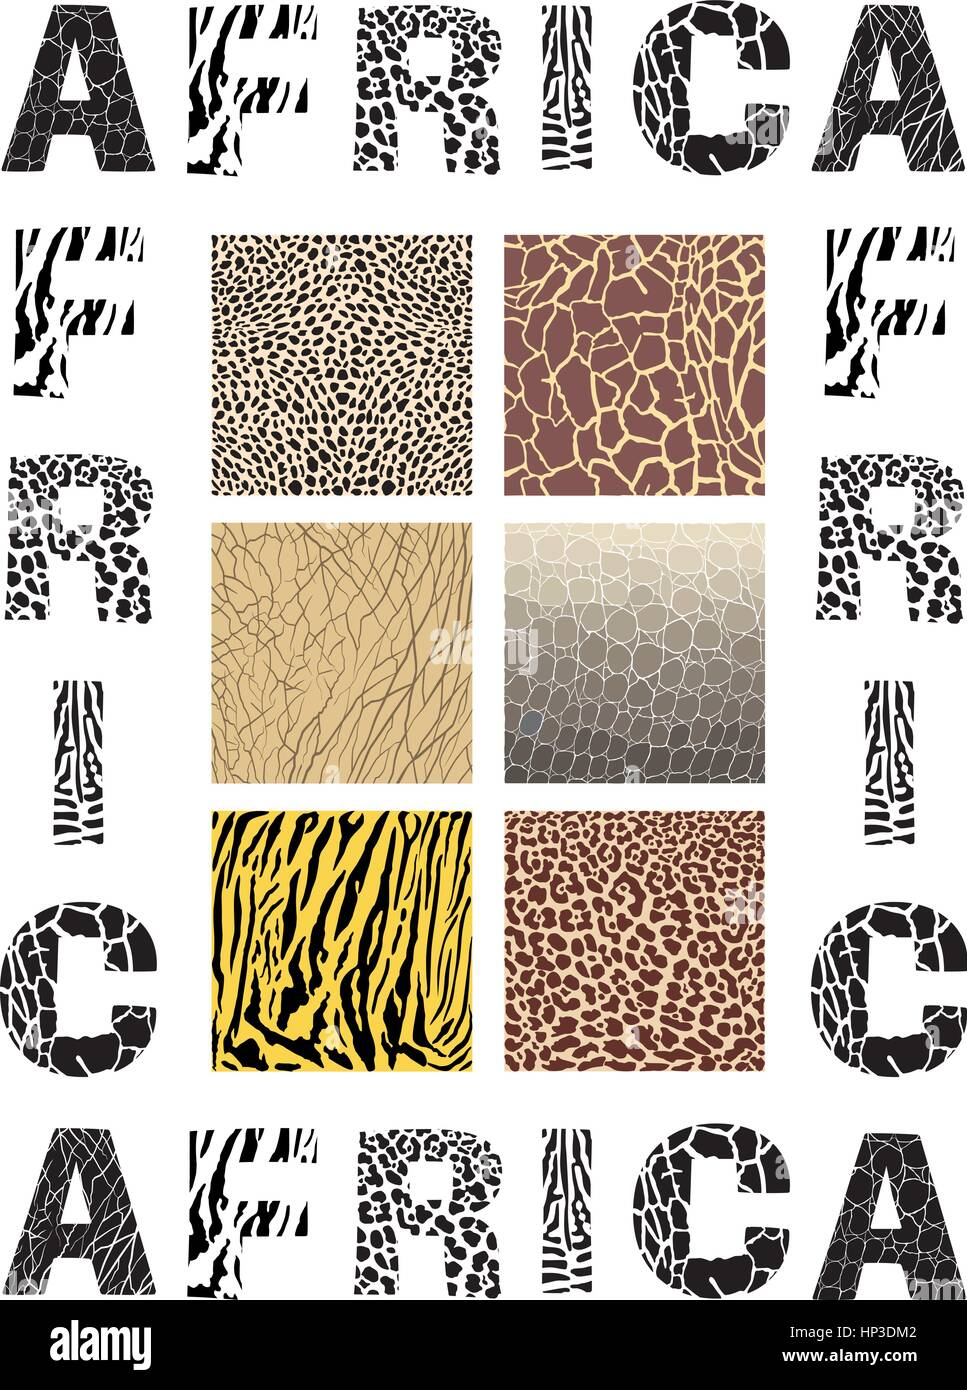 vector illustration Africa - background with text and texture wild animal - Stock Vector